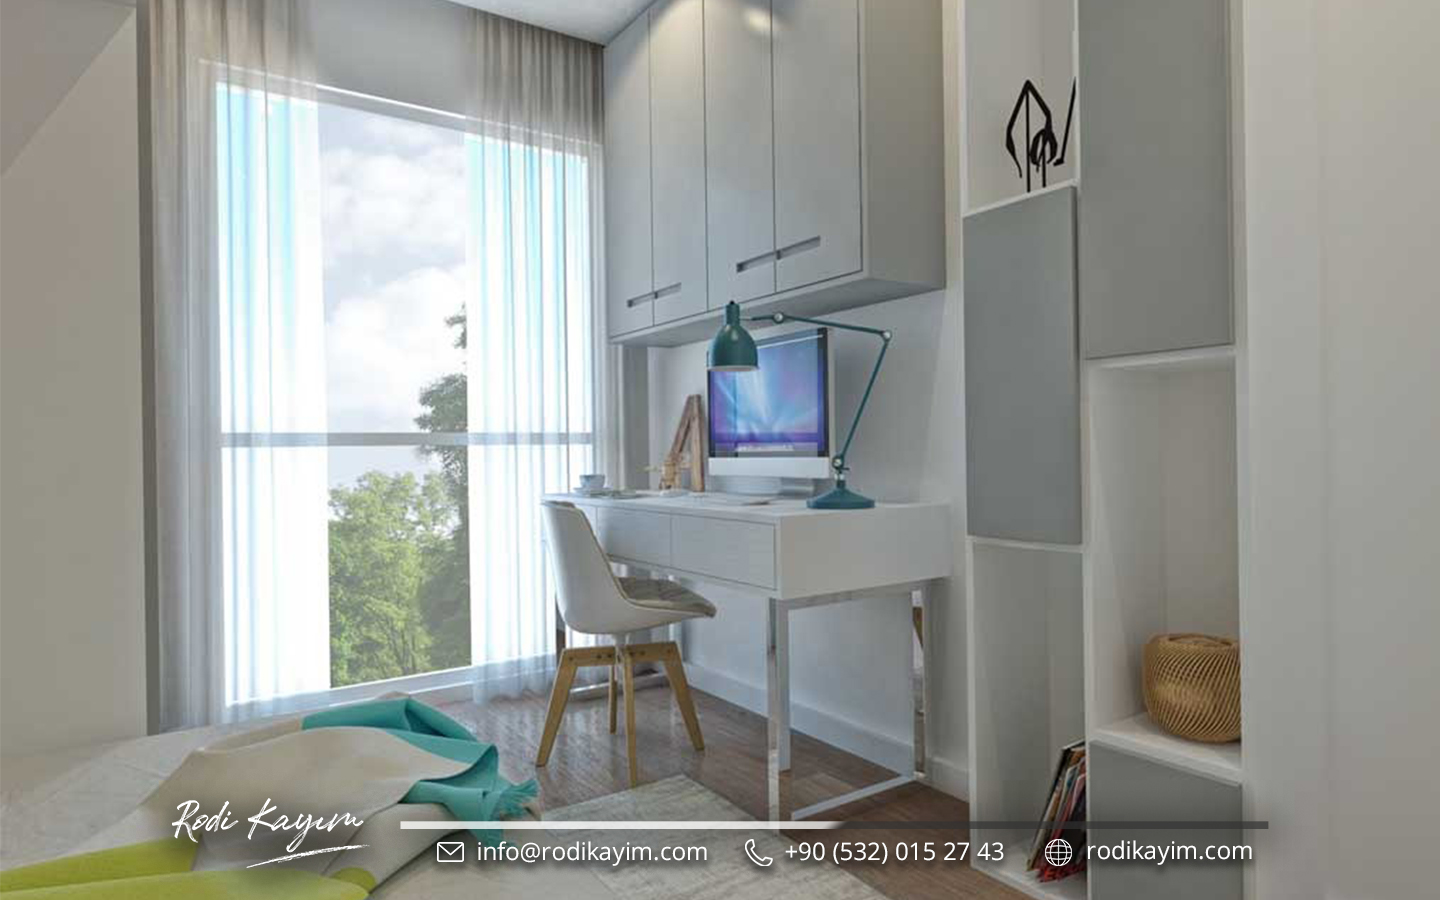 Babacan Port Royal Apartments for sale in istanbul 2